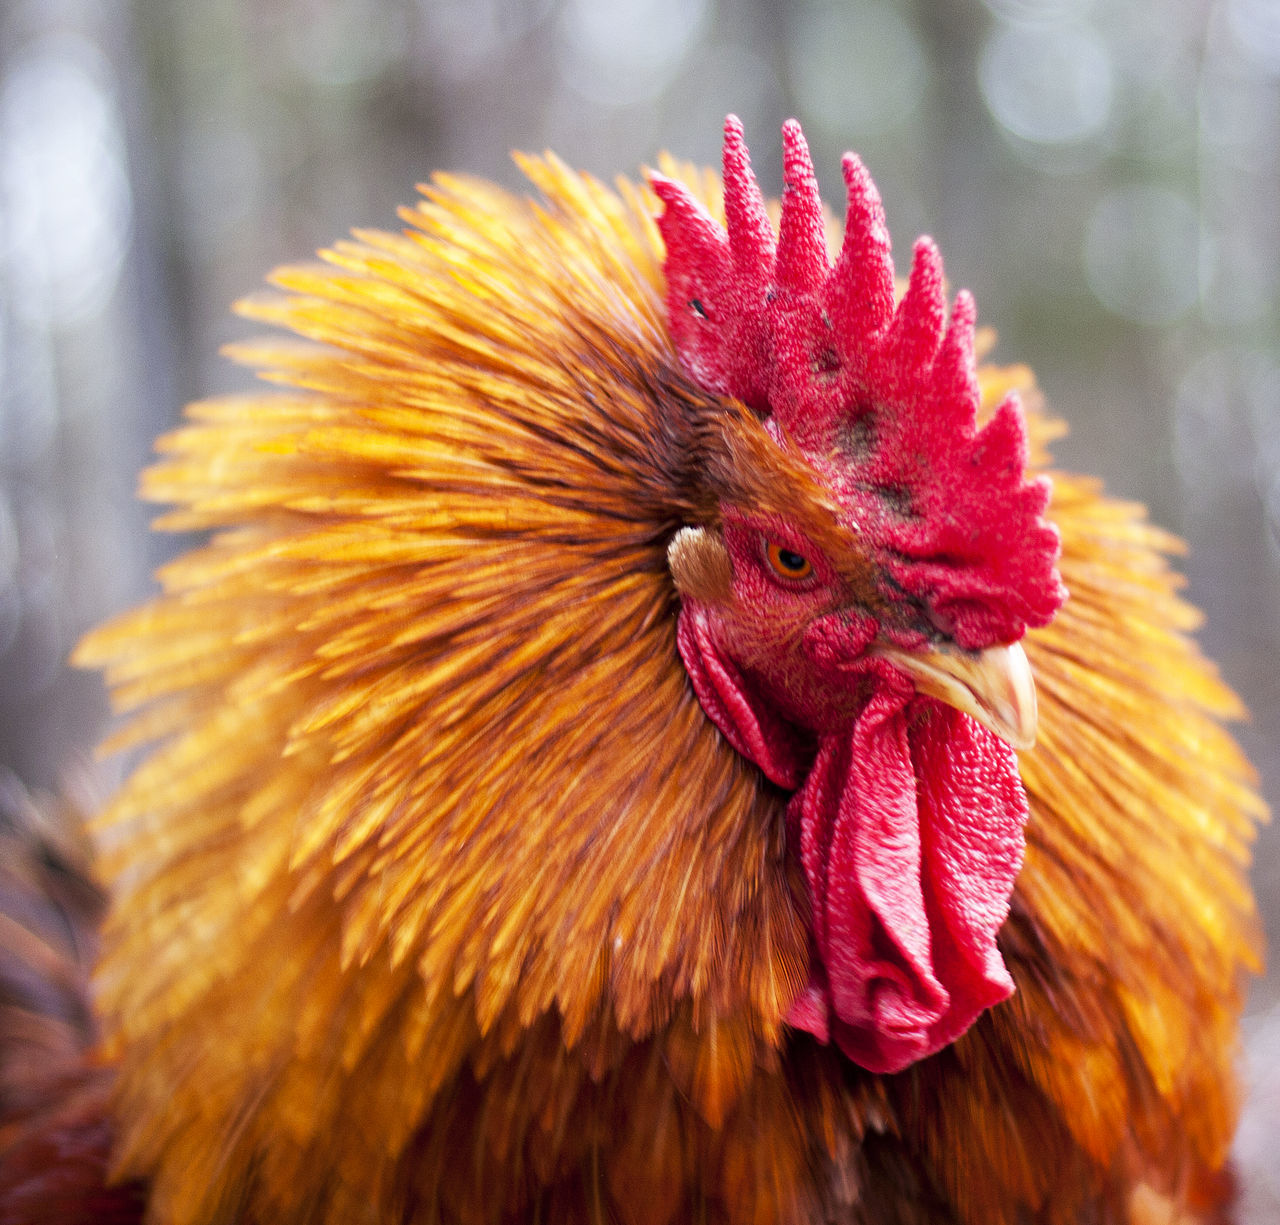 one animal, domestic animals, flower, rooster, livestock, chicken - bird, animal themes, close-up, nature, outdoors, day, bird, no people